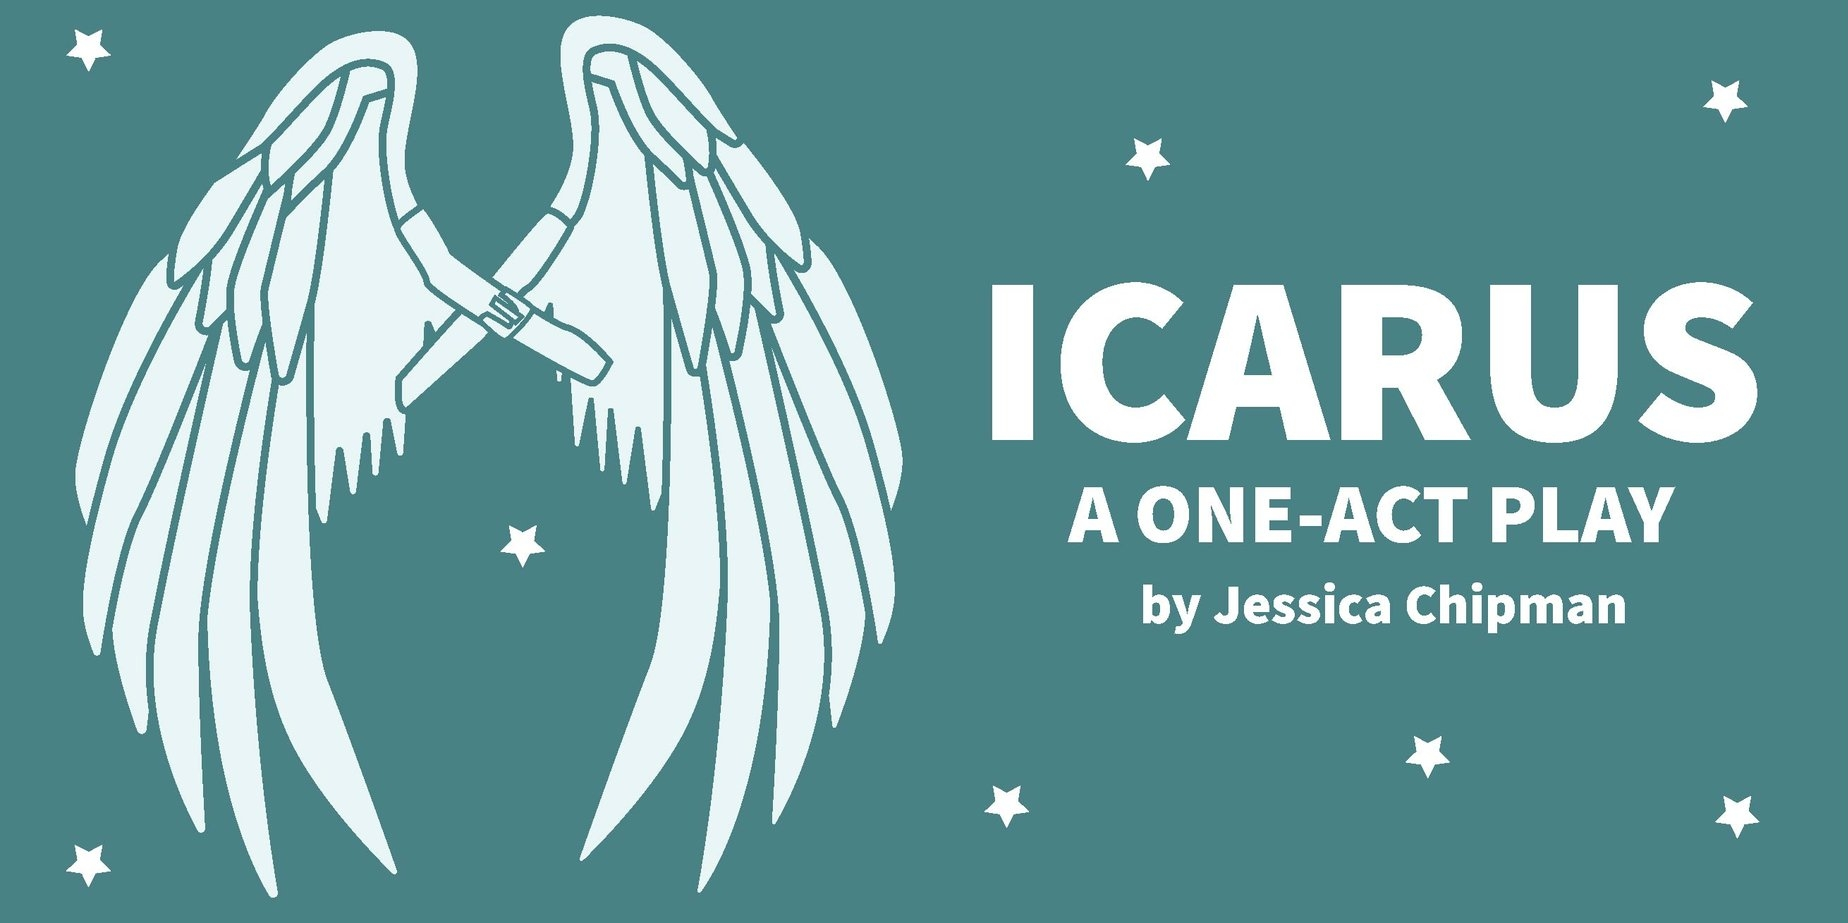 Icarus - Directed by Tyler CarlsonSeptember 27-29, 2018 @ 7:30pmMarshall Performing Arts Center - Dudley Experimental TheatreGeneral admission seating | $5The Greek story of Icarus follows the inventor Daedalus, who commits a crime in Athens and is banished to Crete to serve King Minos. This story will be told using a new method of theatre making involving movement of bodies and set pieces.